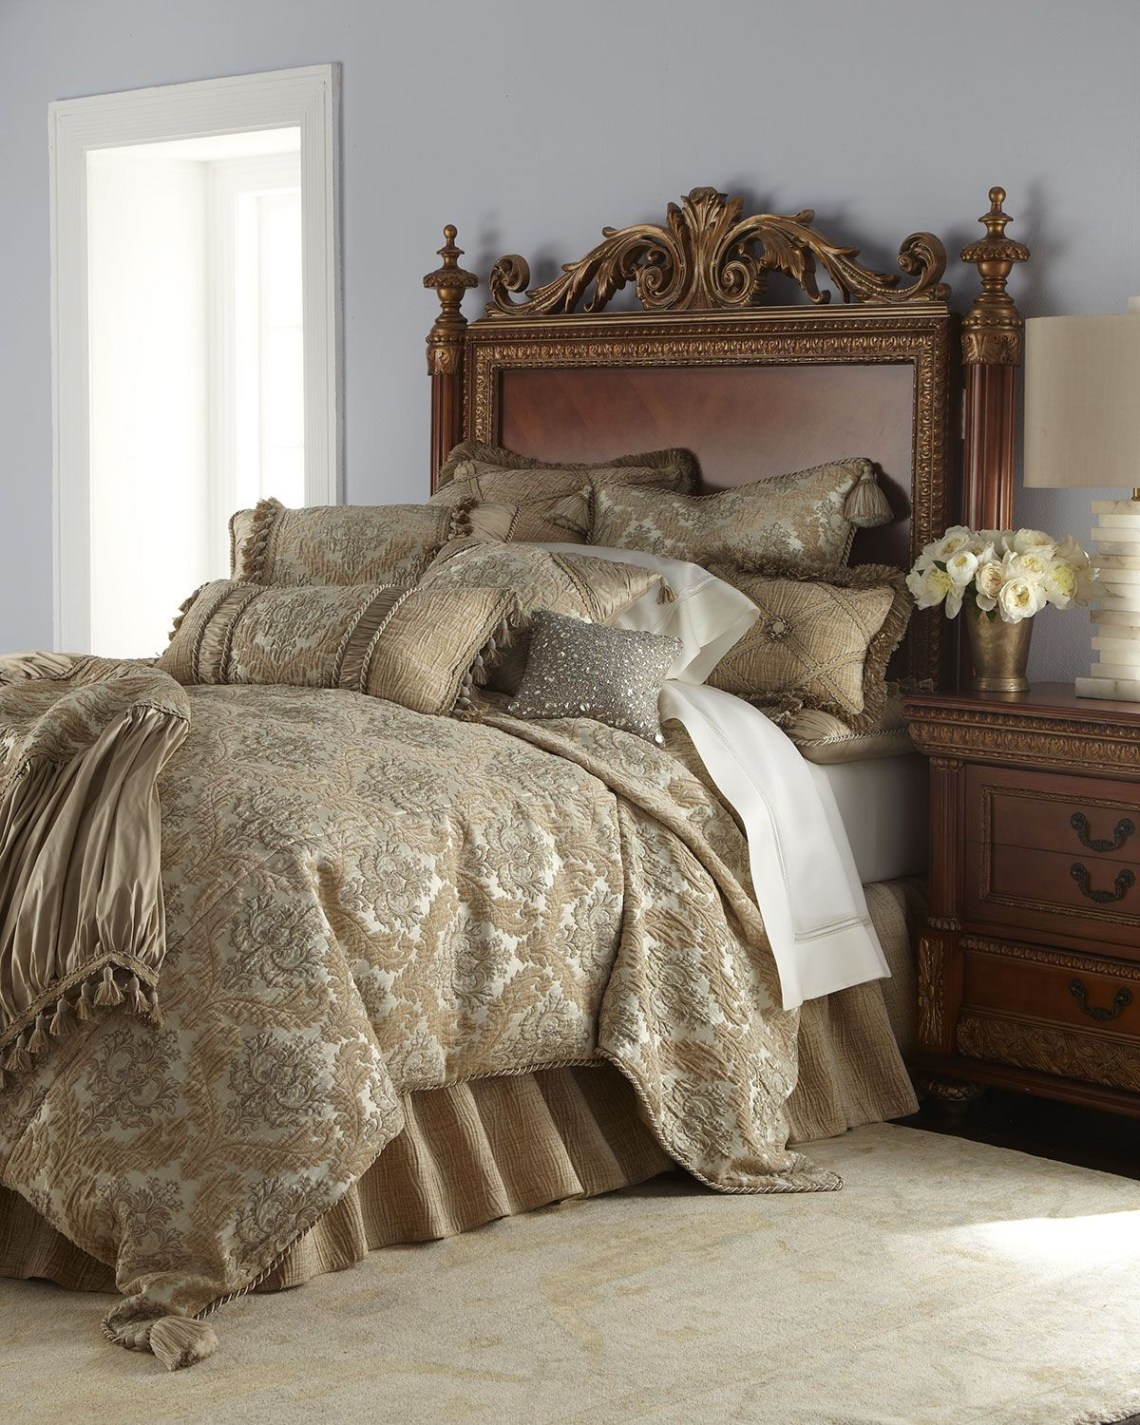 Dian Austin Couture Home Florentine Bedding Luxury Bedding